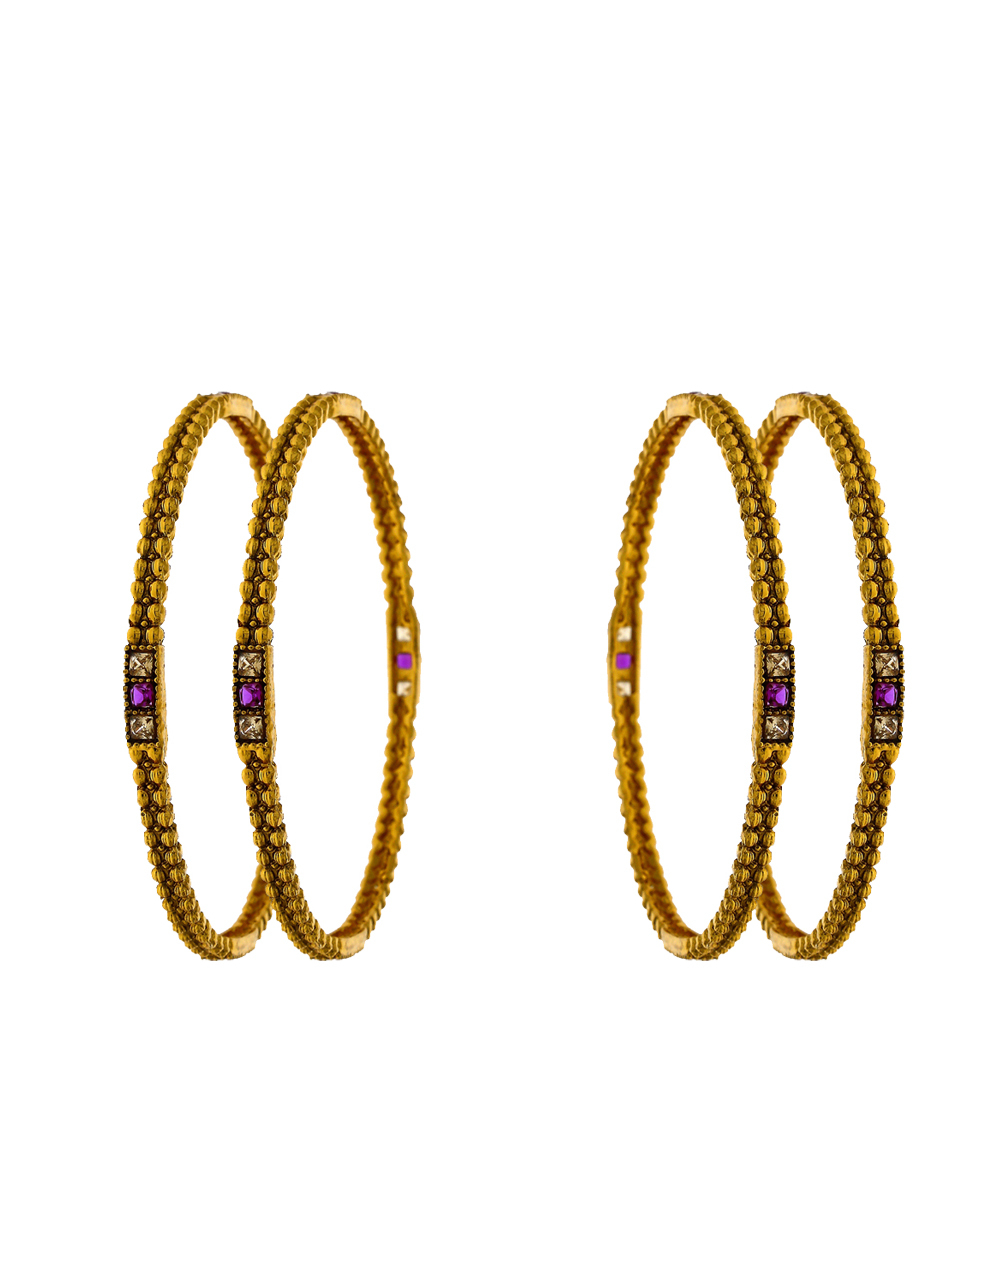 Pair of for bangles with latest designer decked with pink stone for women